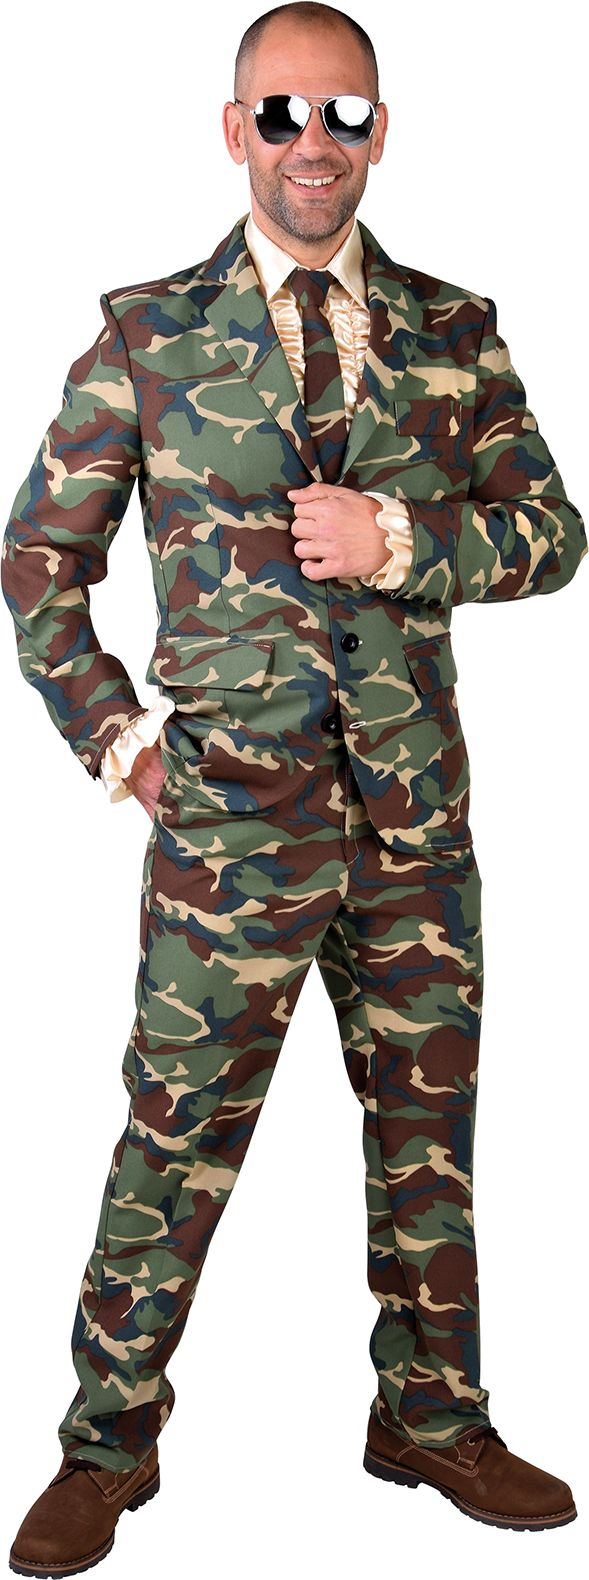 Leger camouflage outfit mannen